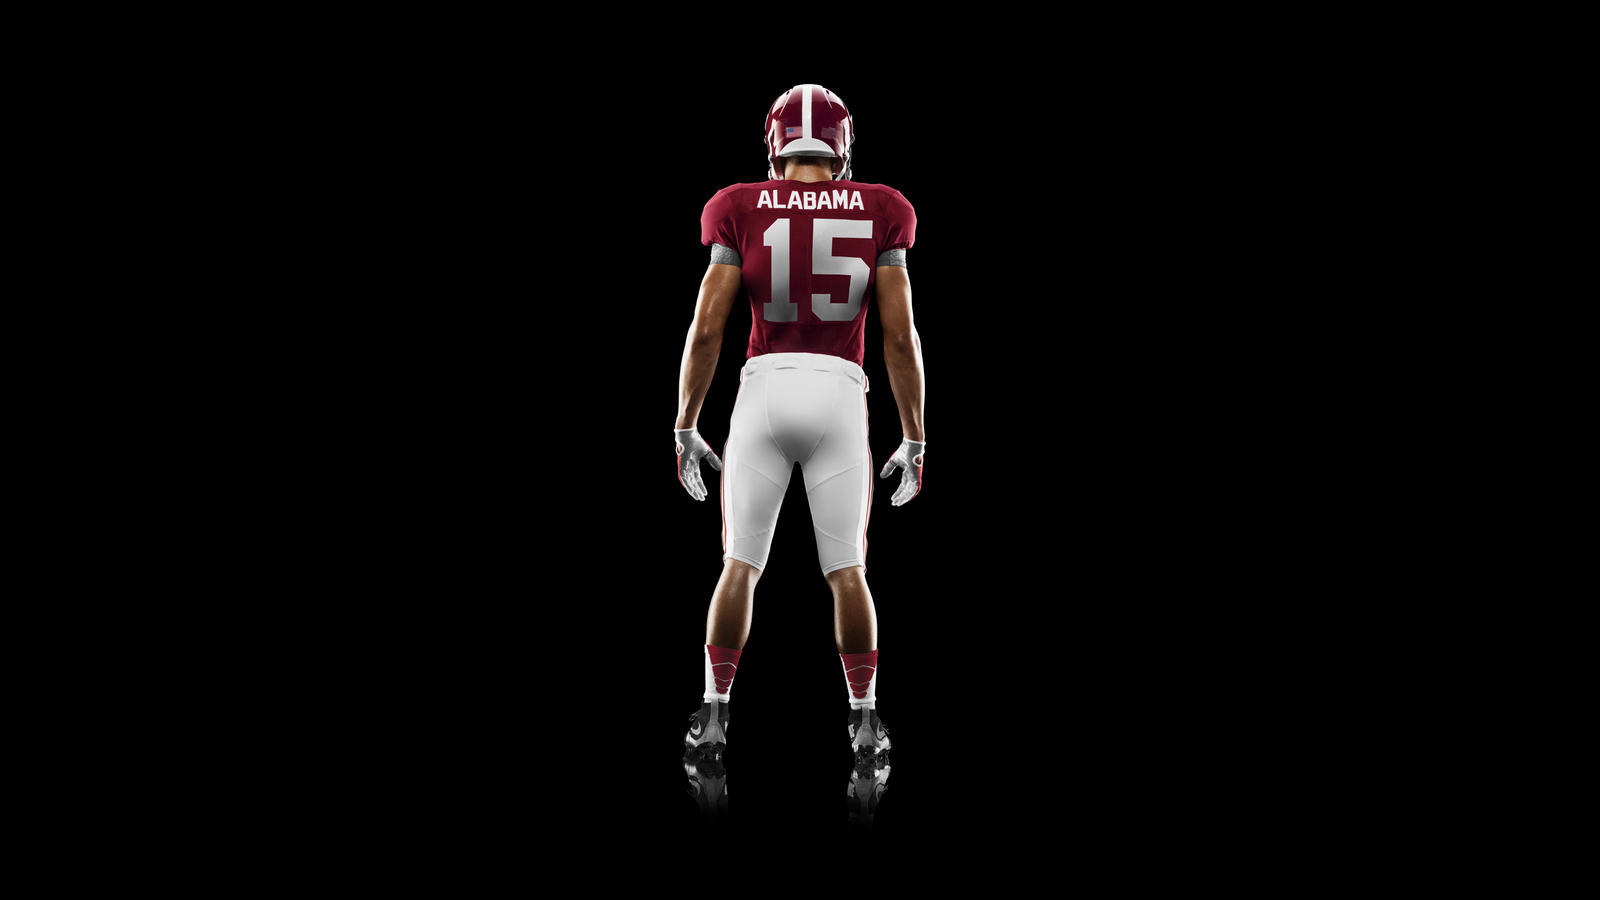 HO14_NFB_NCAA_Alabama_Uniform_684